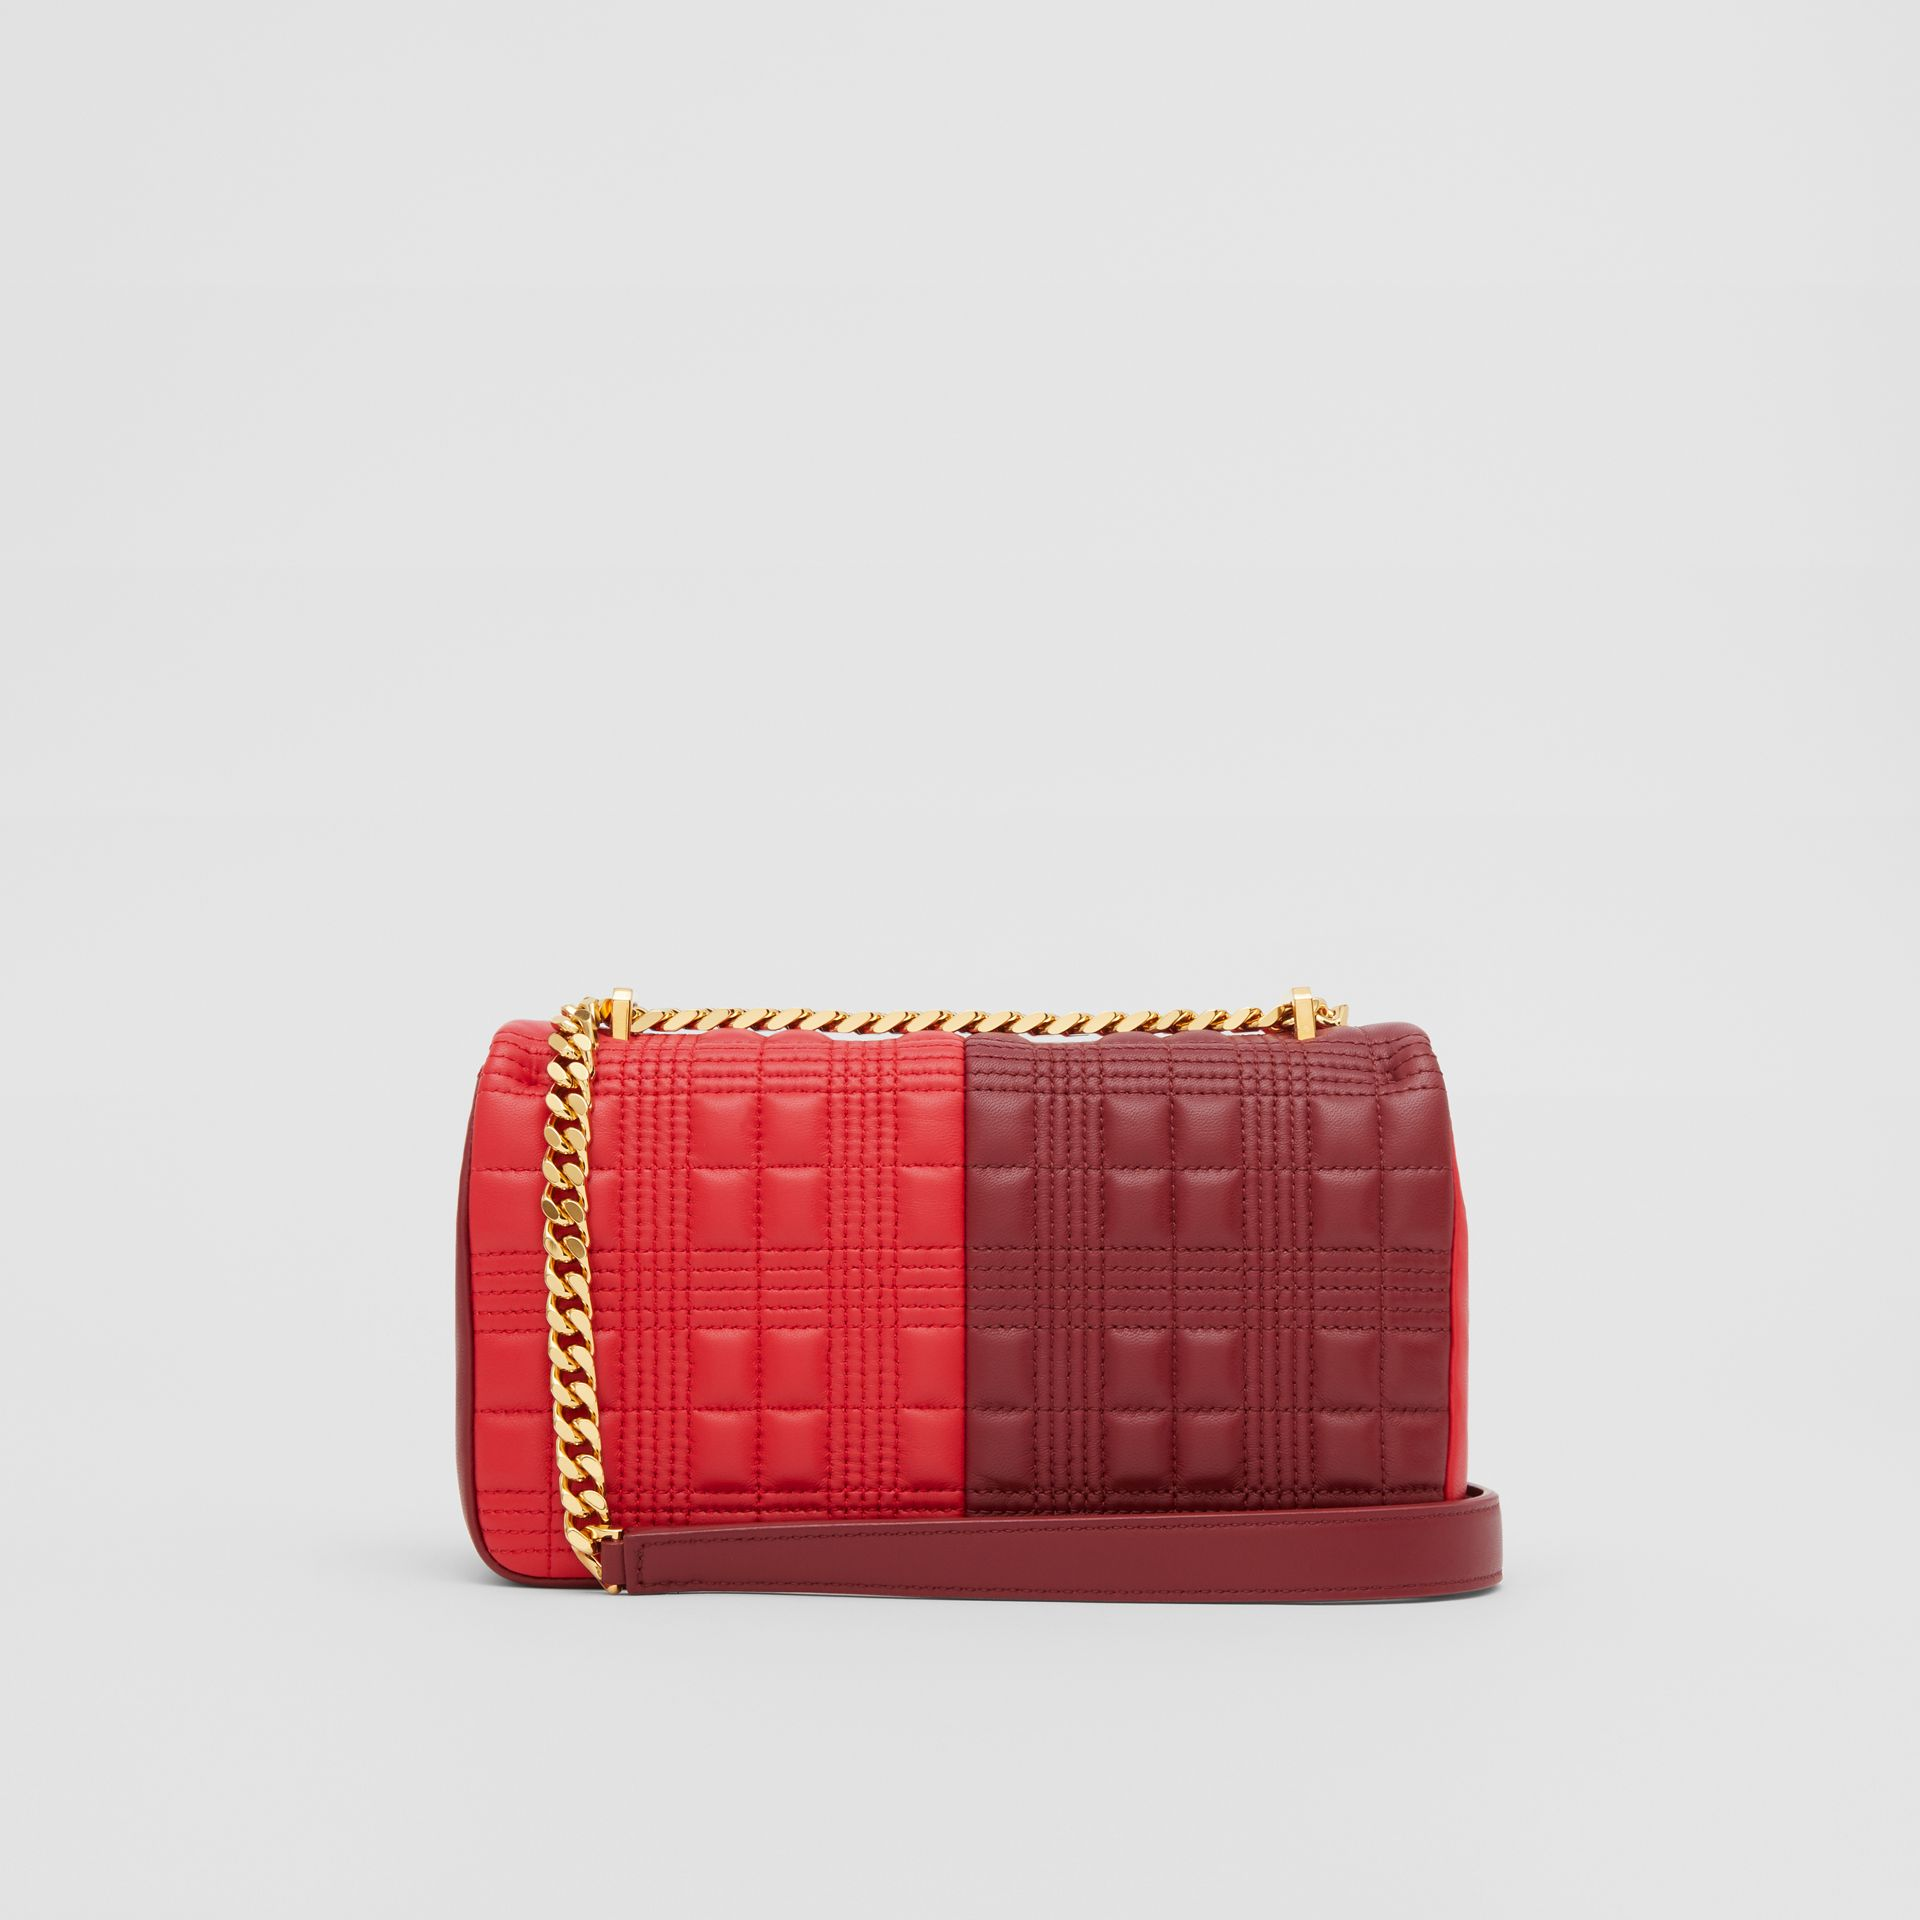 Small Quilted Colour Block Lambskin Lola Bag in Bright Red/burgundy - Women | Burberry Hong Kong S.A.R. - gallery image 7